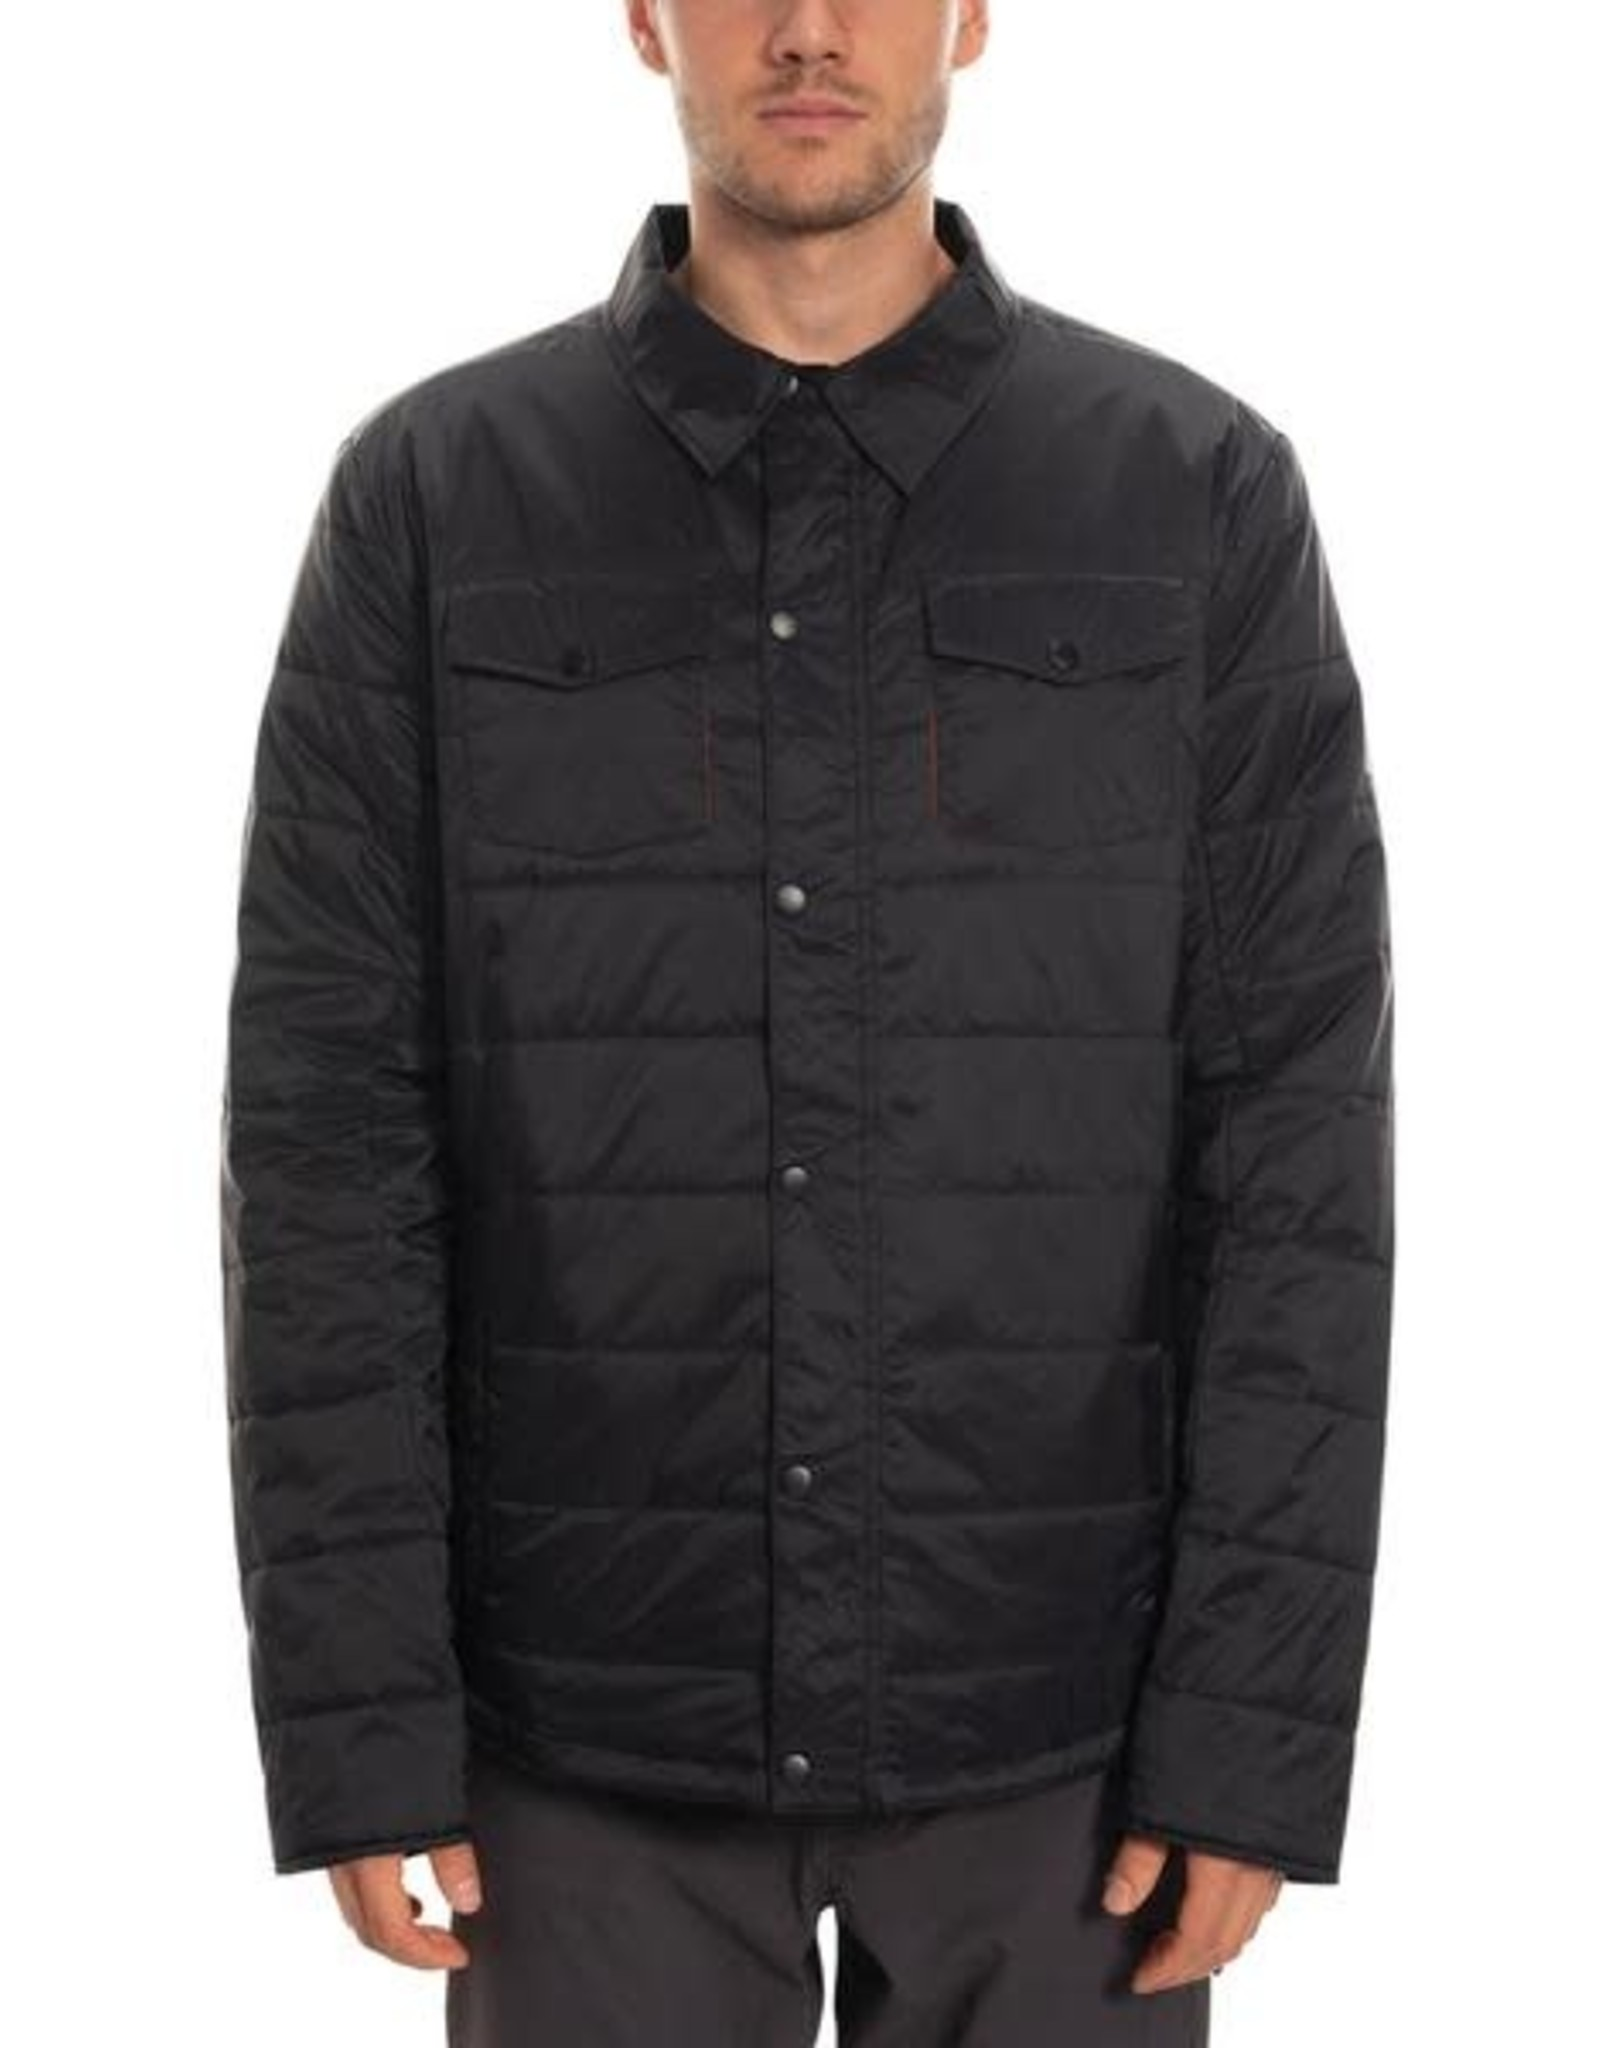 686 686 - manteau primaloft all-day flannel